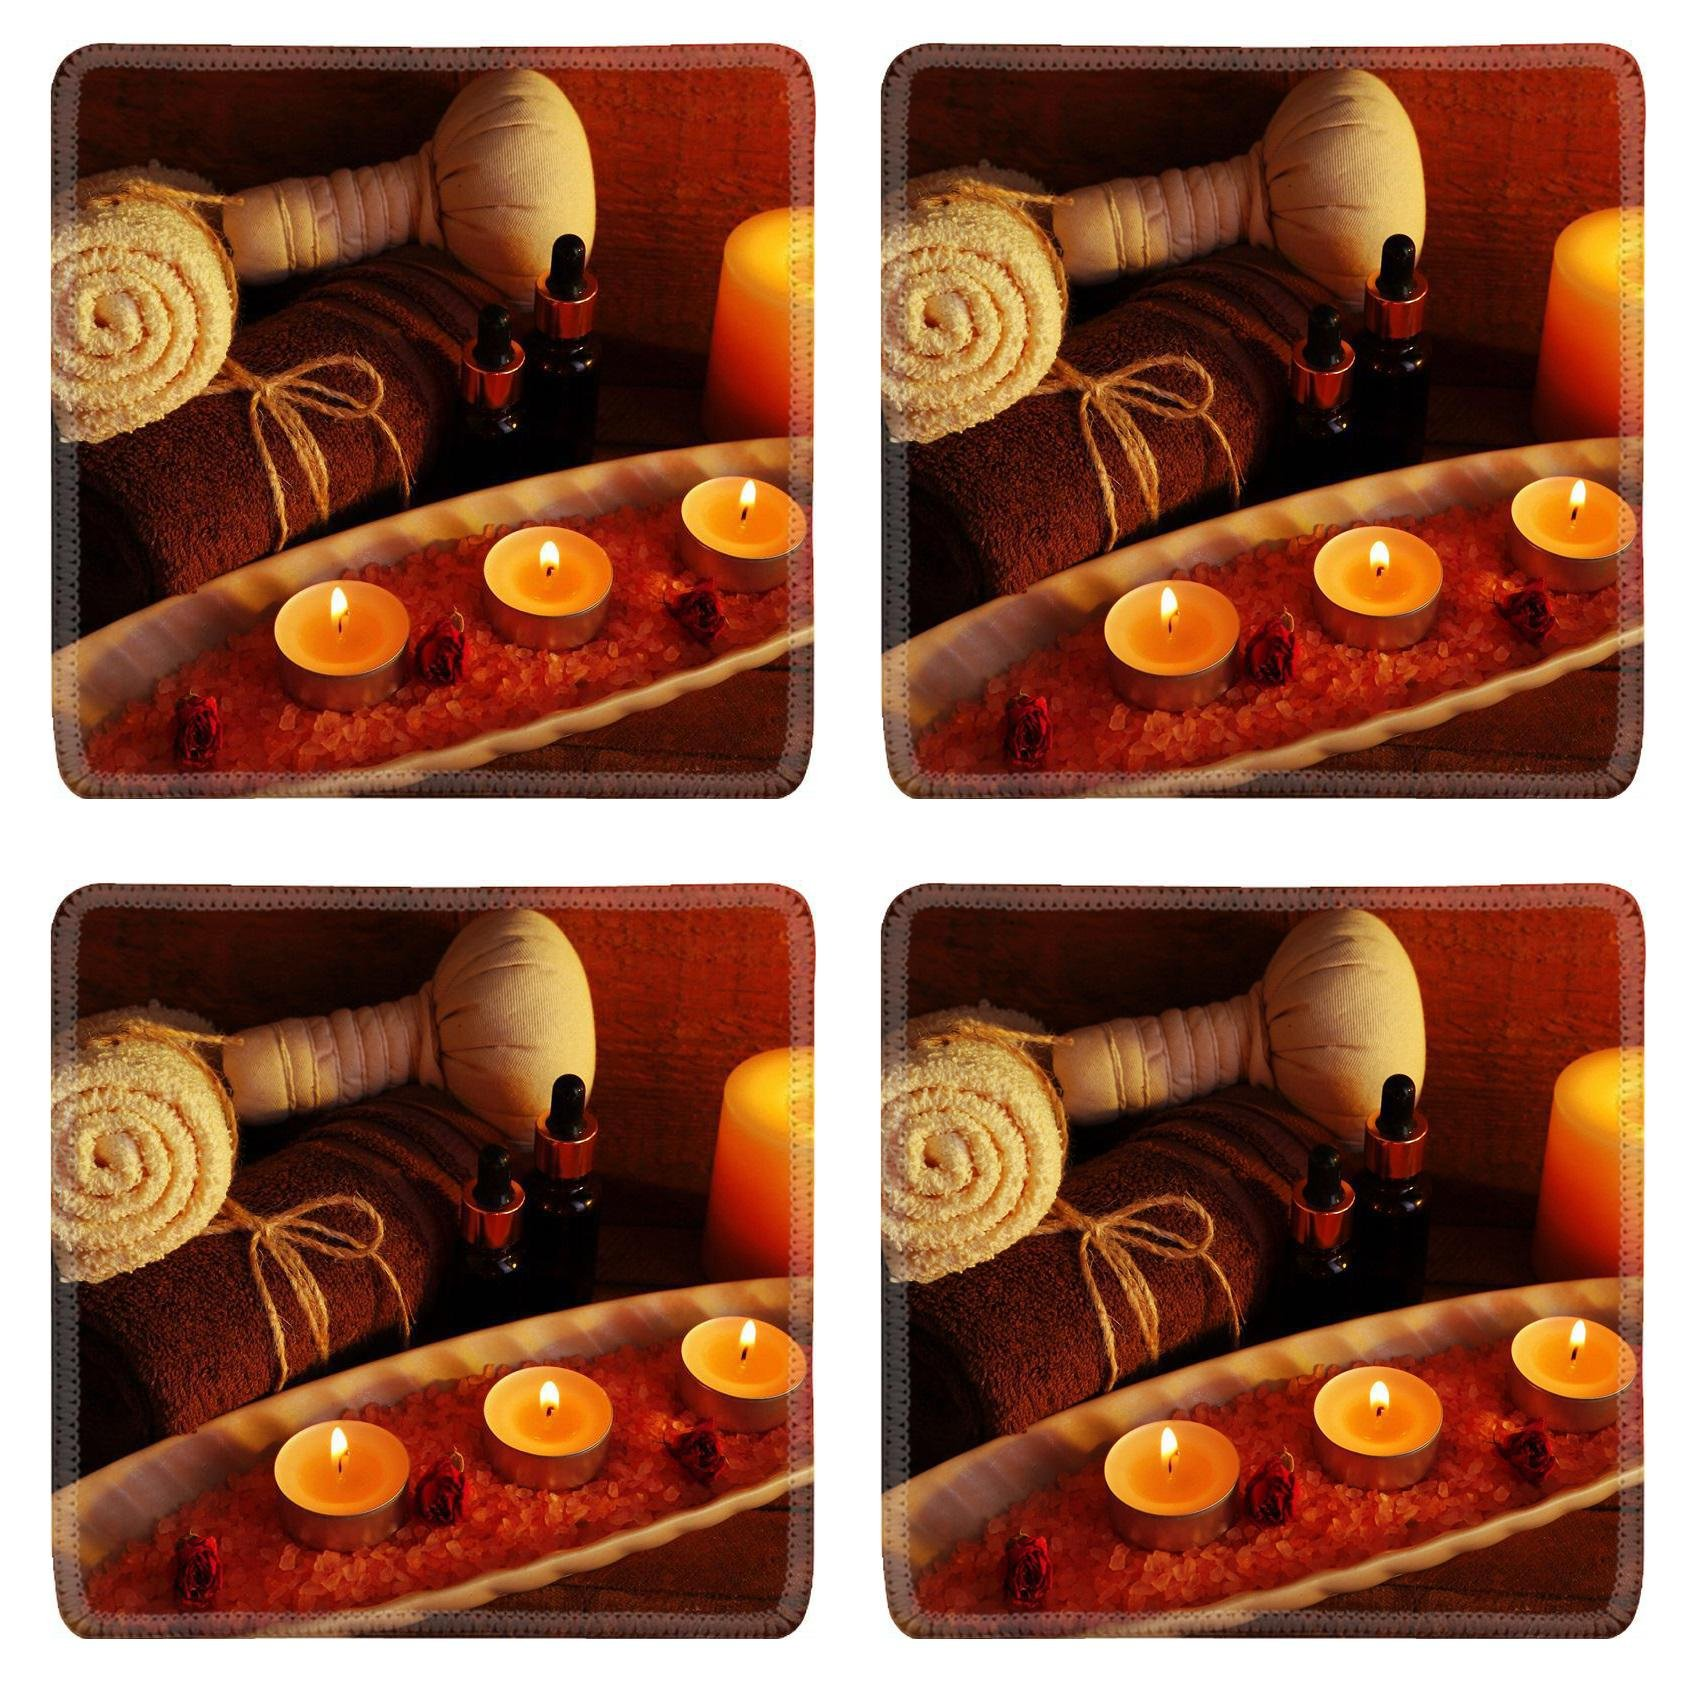 MSD Square Coasters Non-Slip Natural Rubber Desk Coasters design 34100938 Composition with spa treatment on wooden background